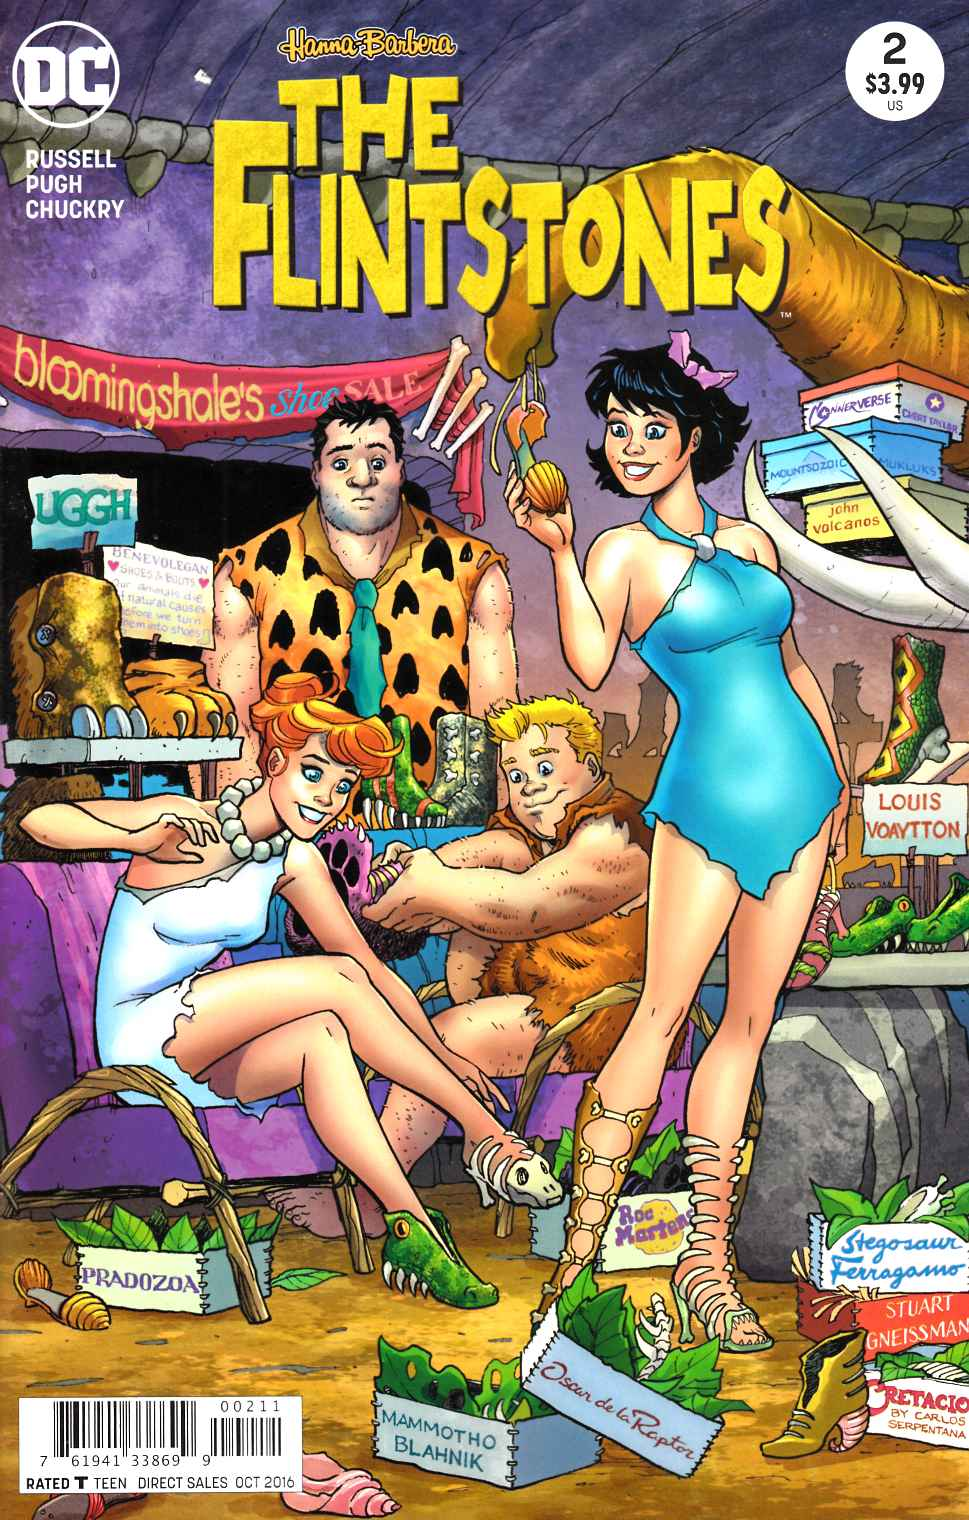 Flintstones #2 [DC Comic] LARGE